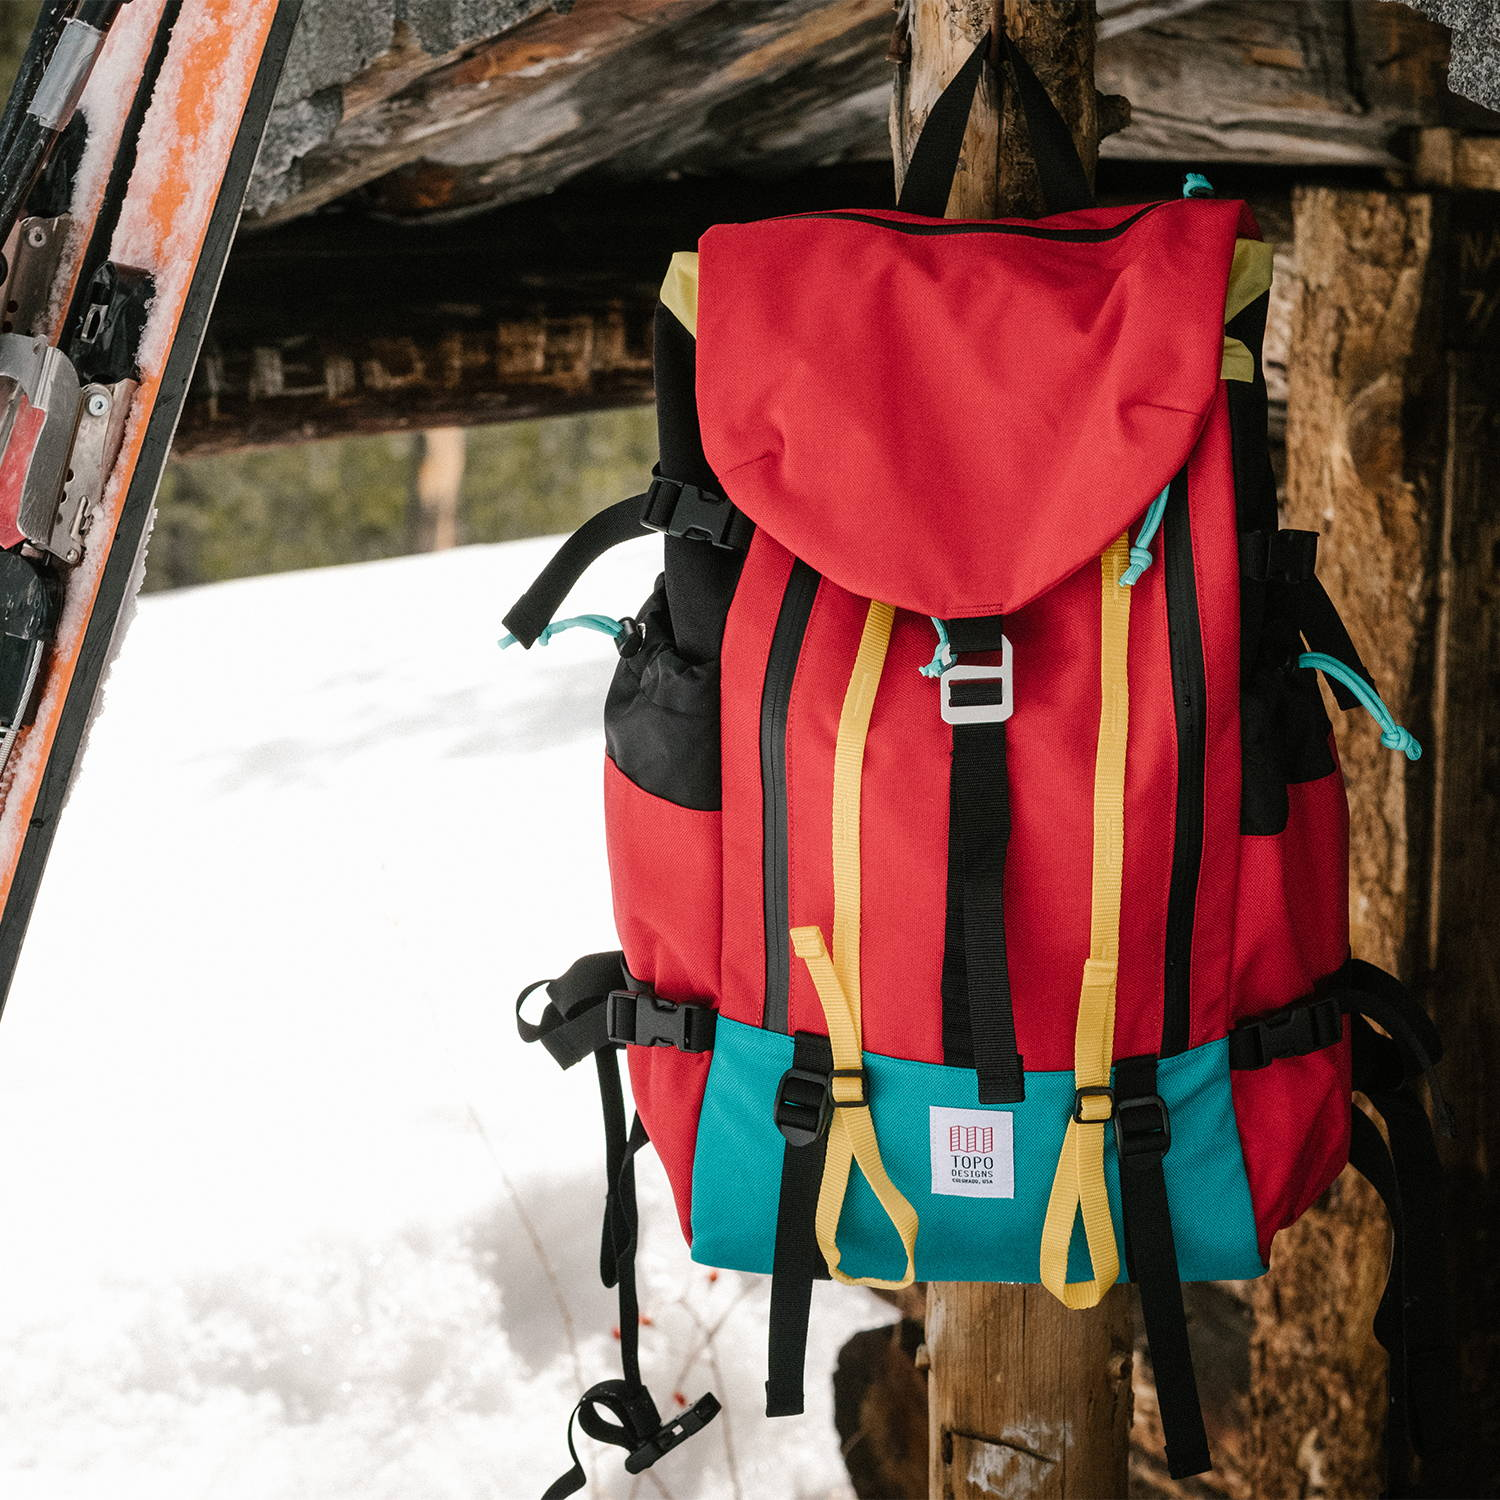 95480cf853cc Spacer mesh back panel and shoulder straps make the Mountain Pack a more  comfortable carry on the way up to climb